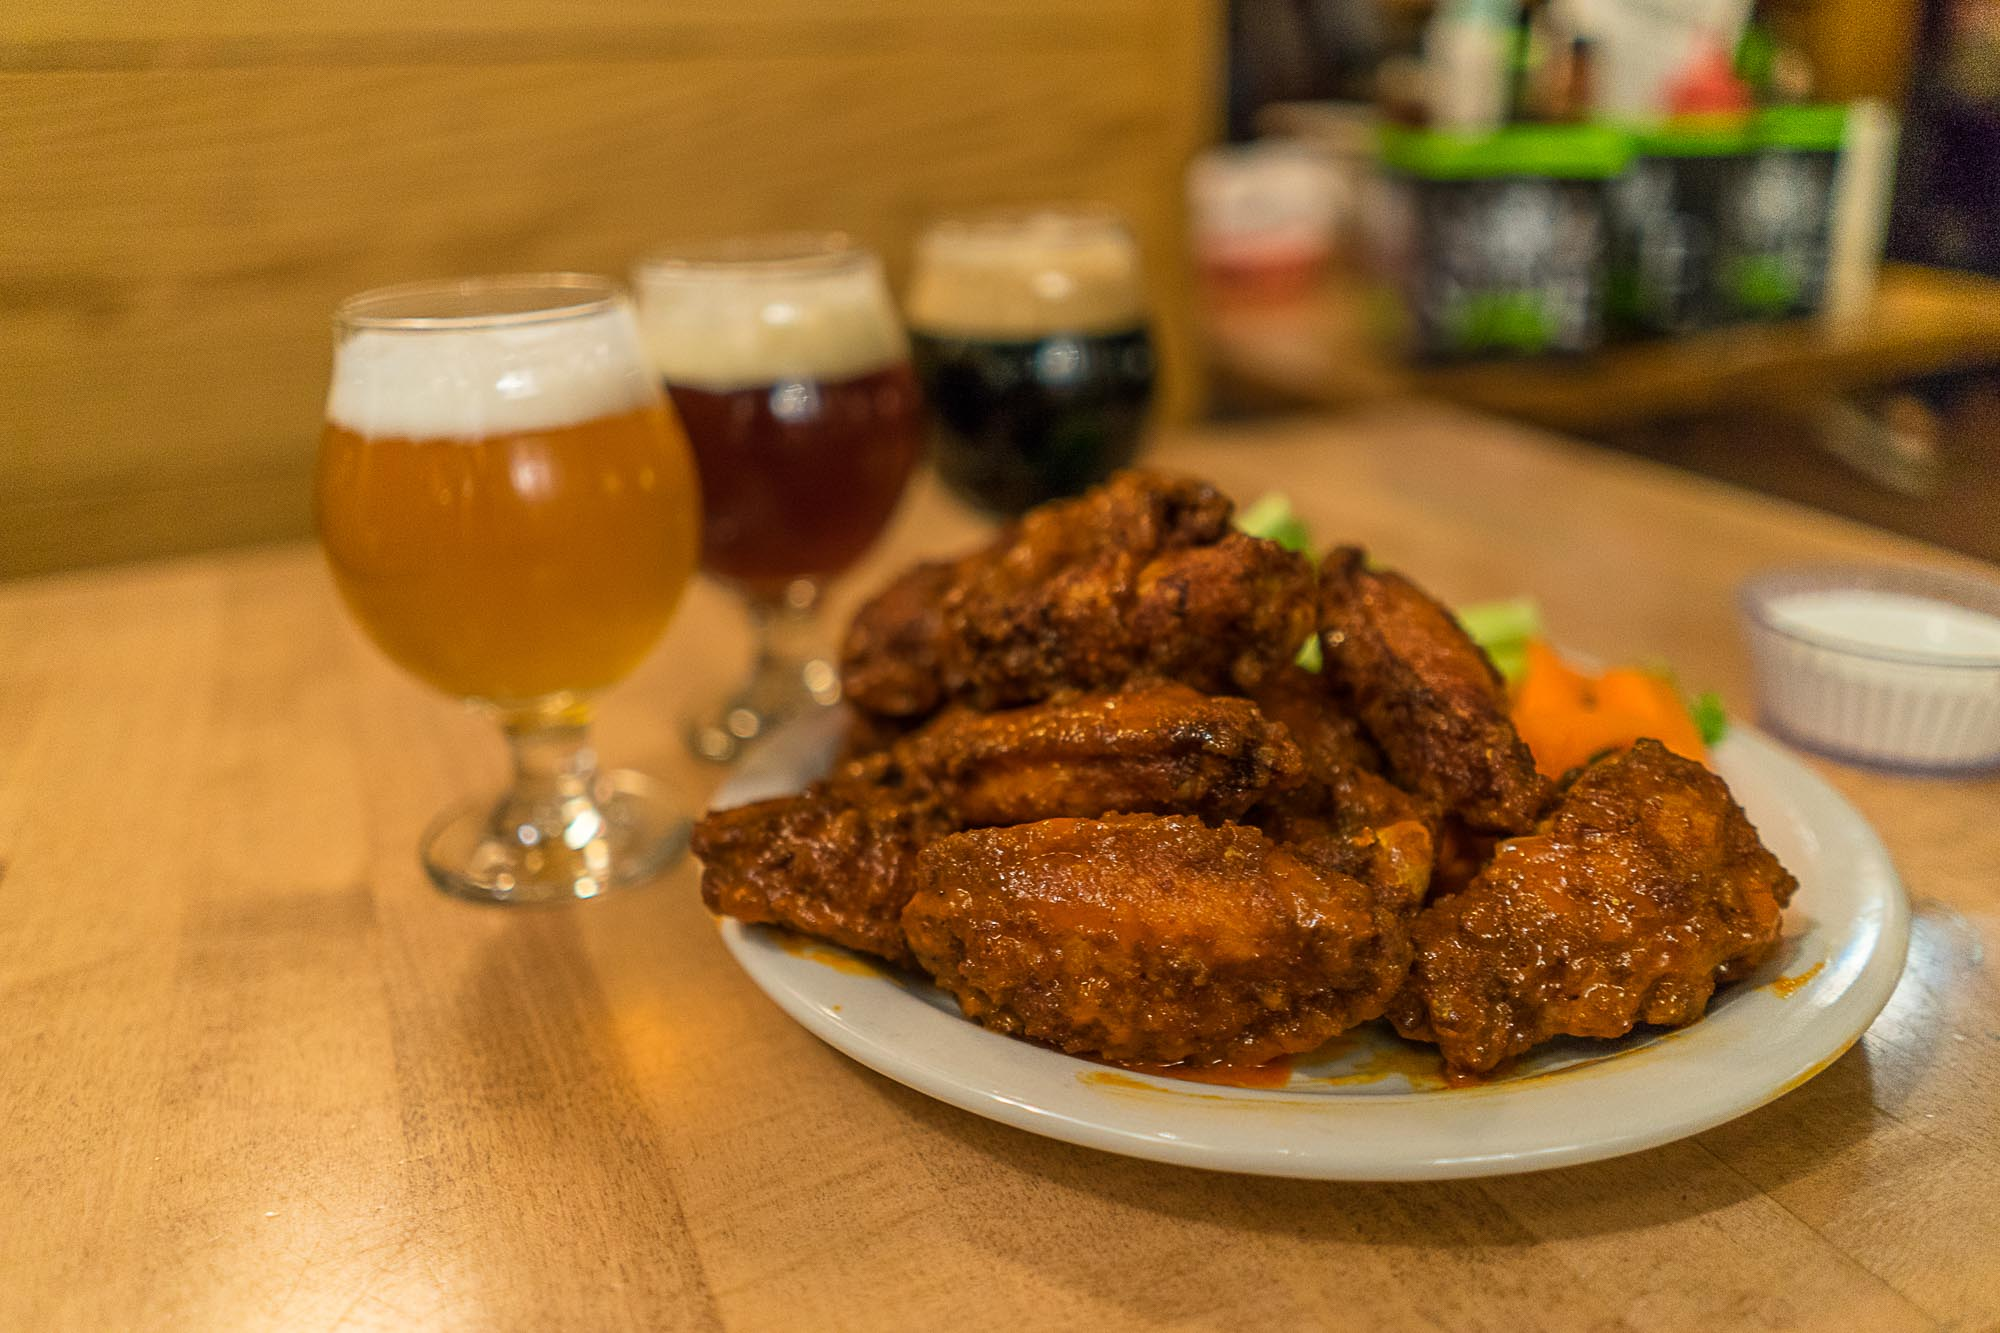 Chicken wings and three types of beer from Mountain Sun.